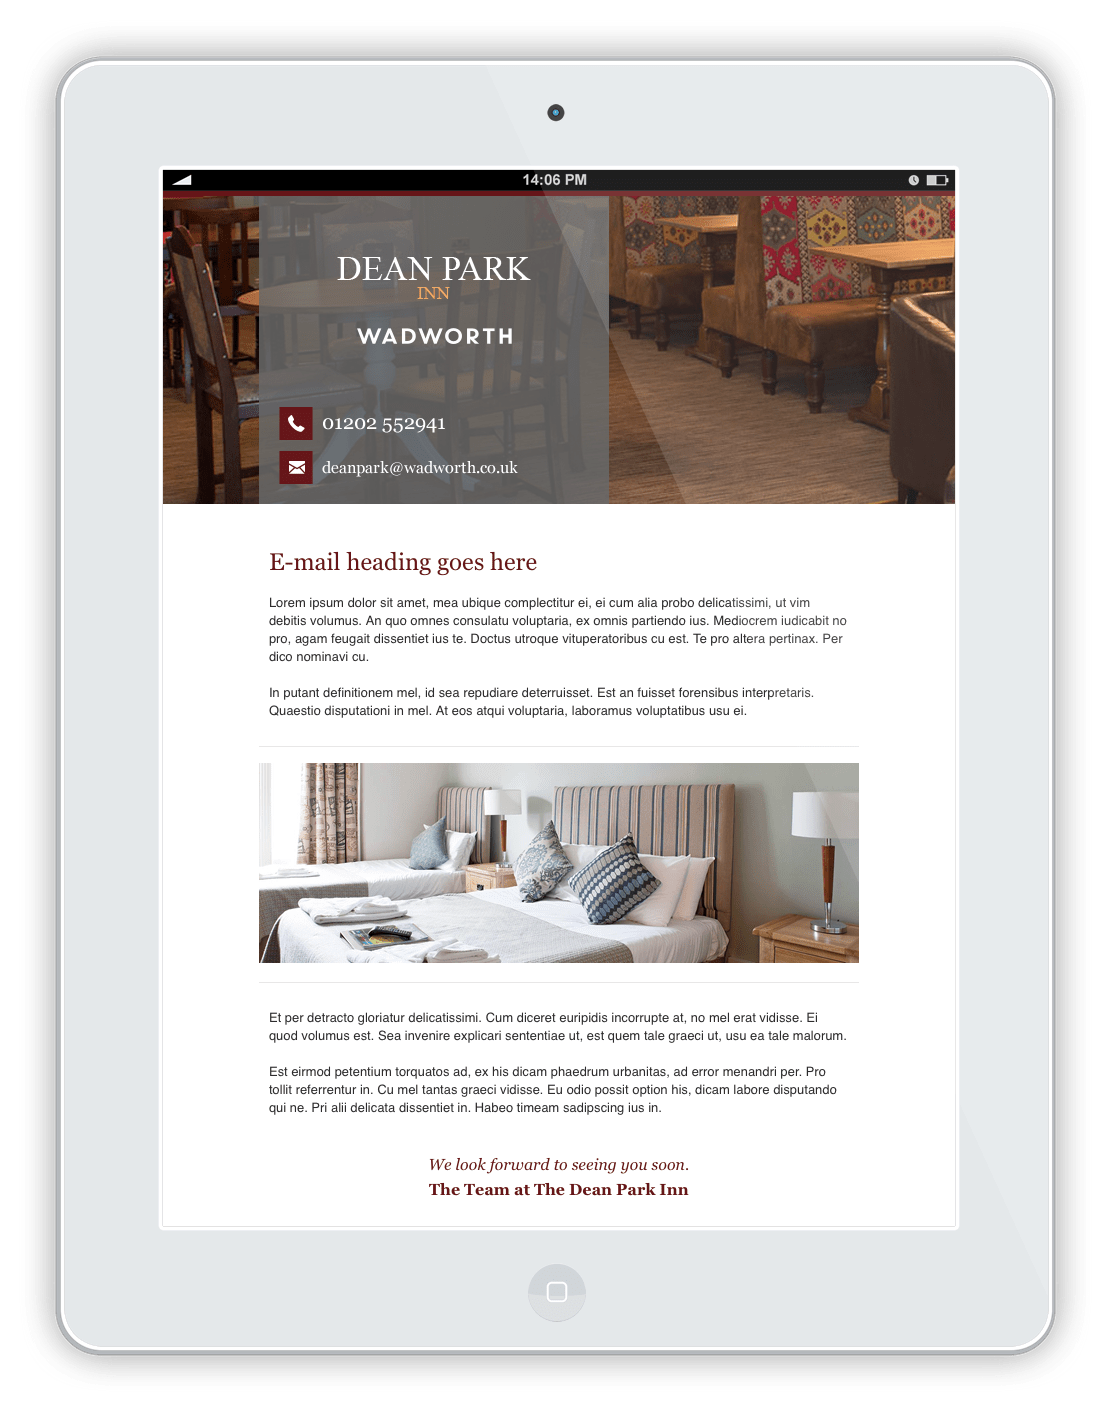 The Dean Park Inn - Wadworth